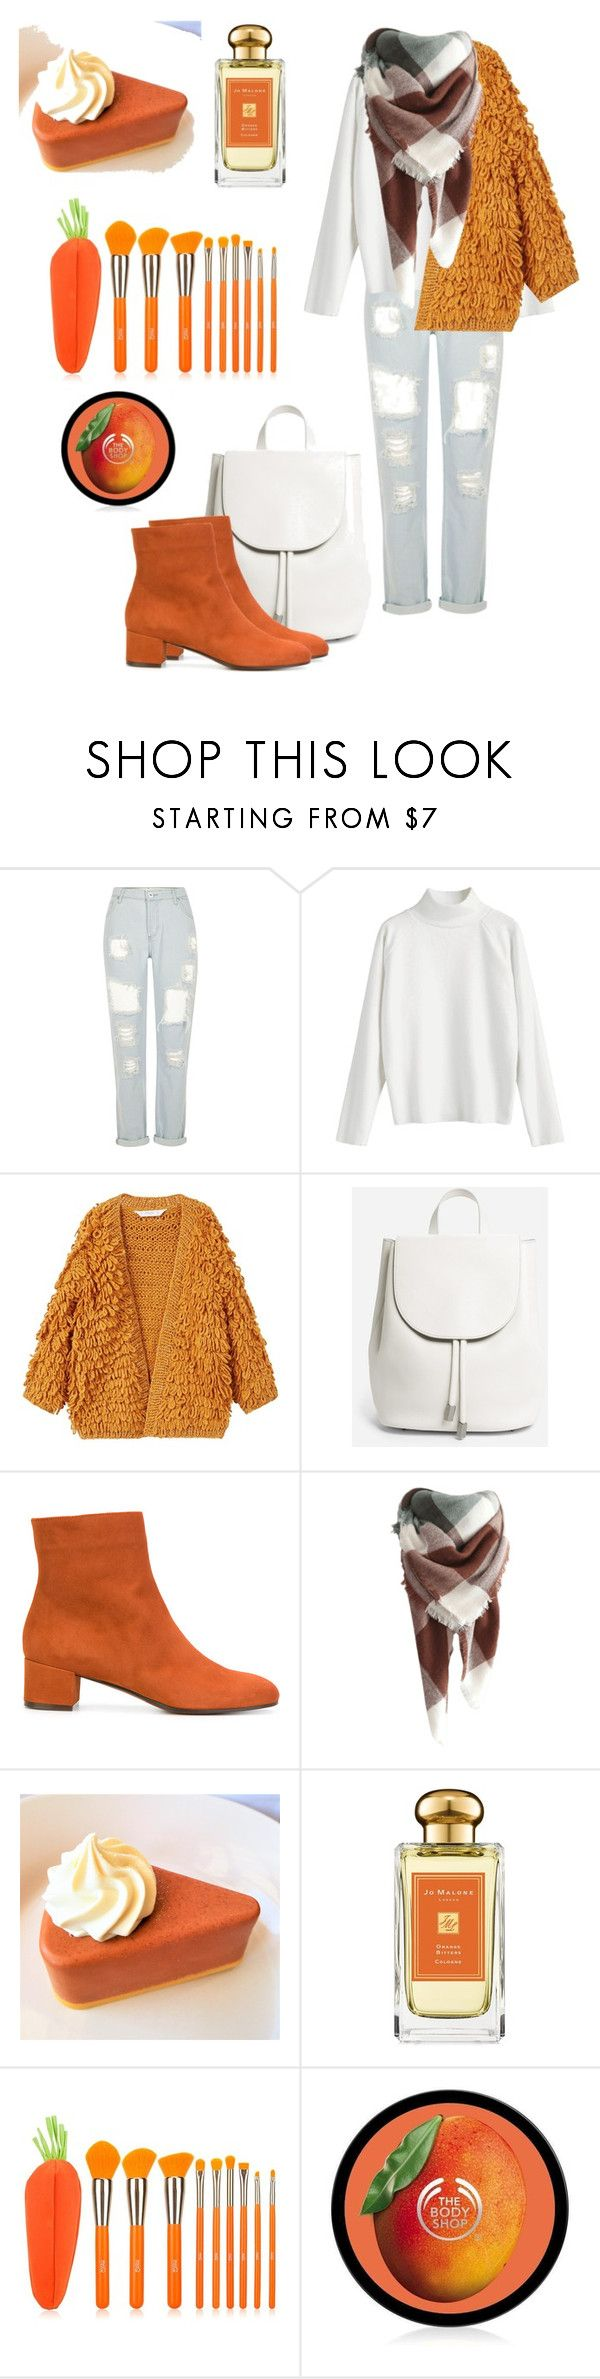 """Без названия #51"" by lana1000 ❤ liked on Polyvore featuring River Island, MANGO, Everlane, L'Autre Chose and Jo Malone"